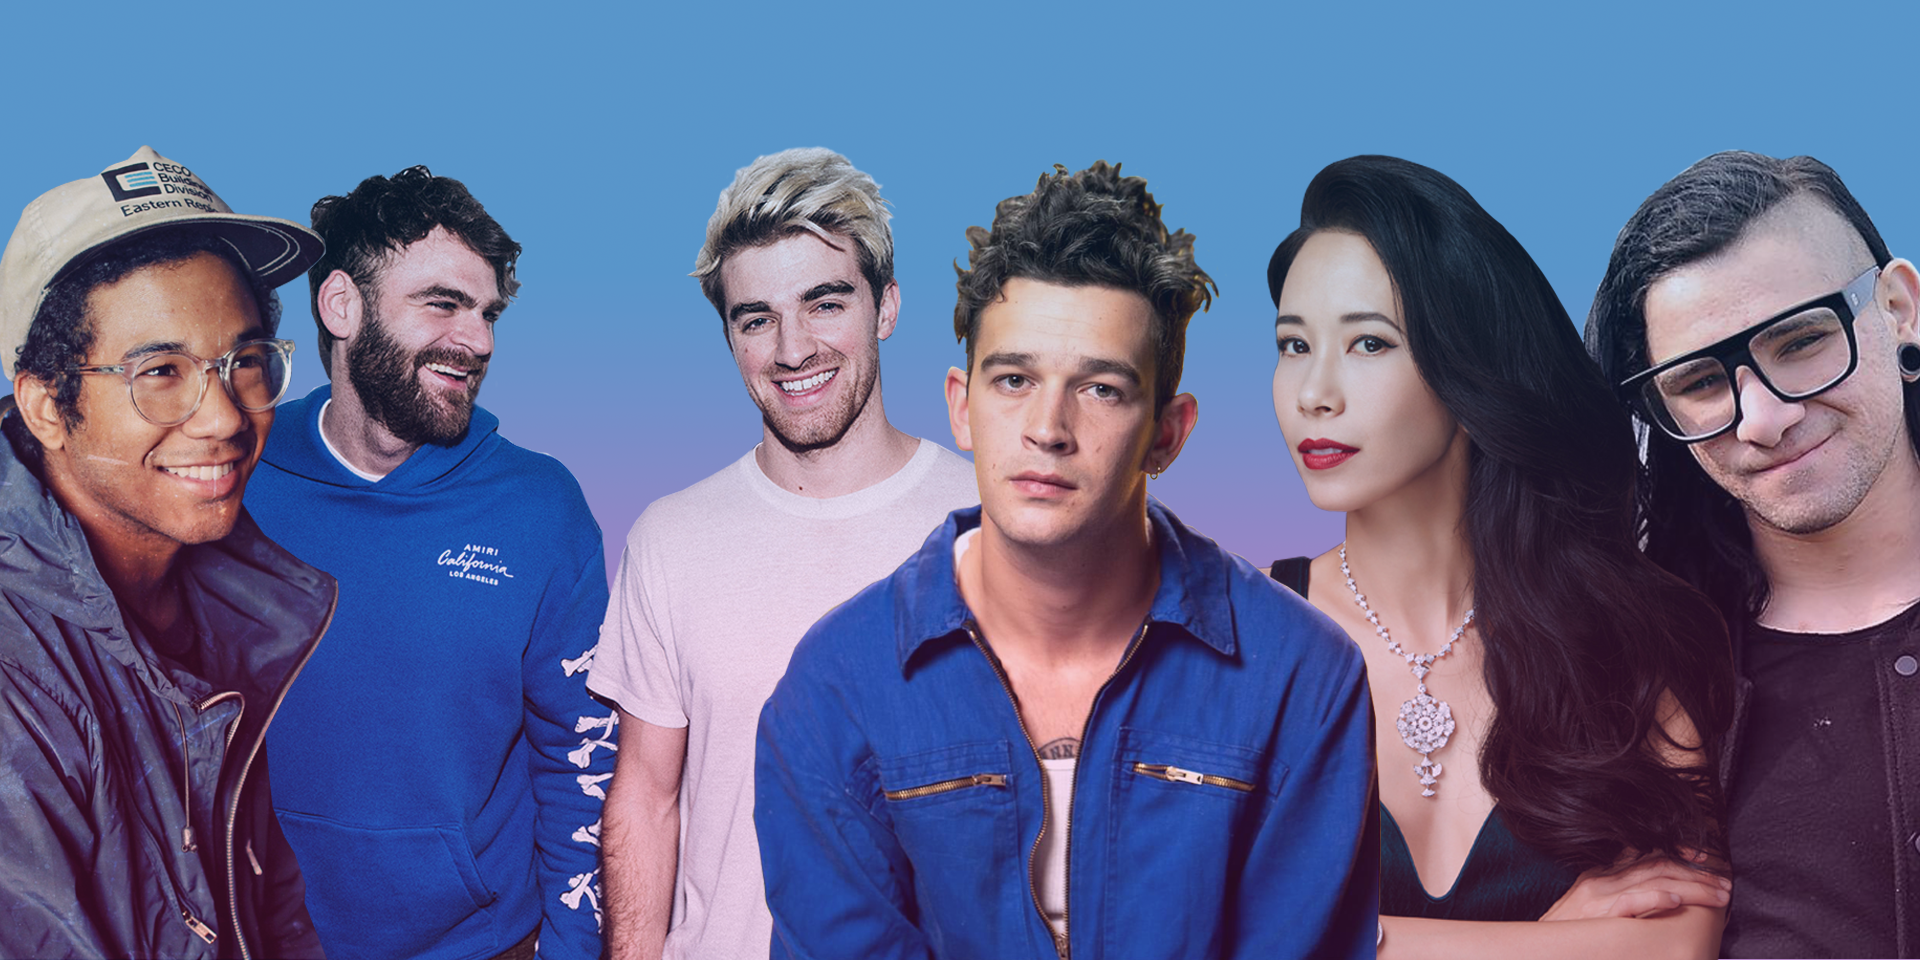 Concerts in Singapore 2019: A definitive list of all the major